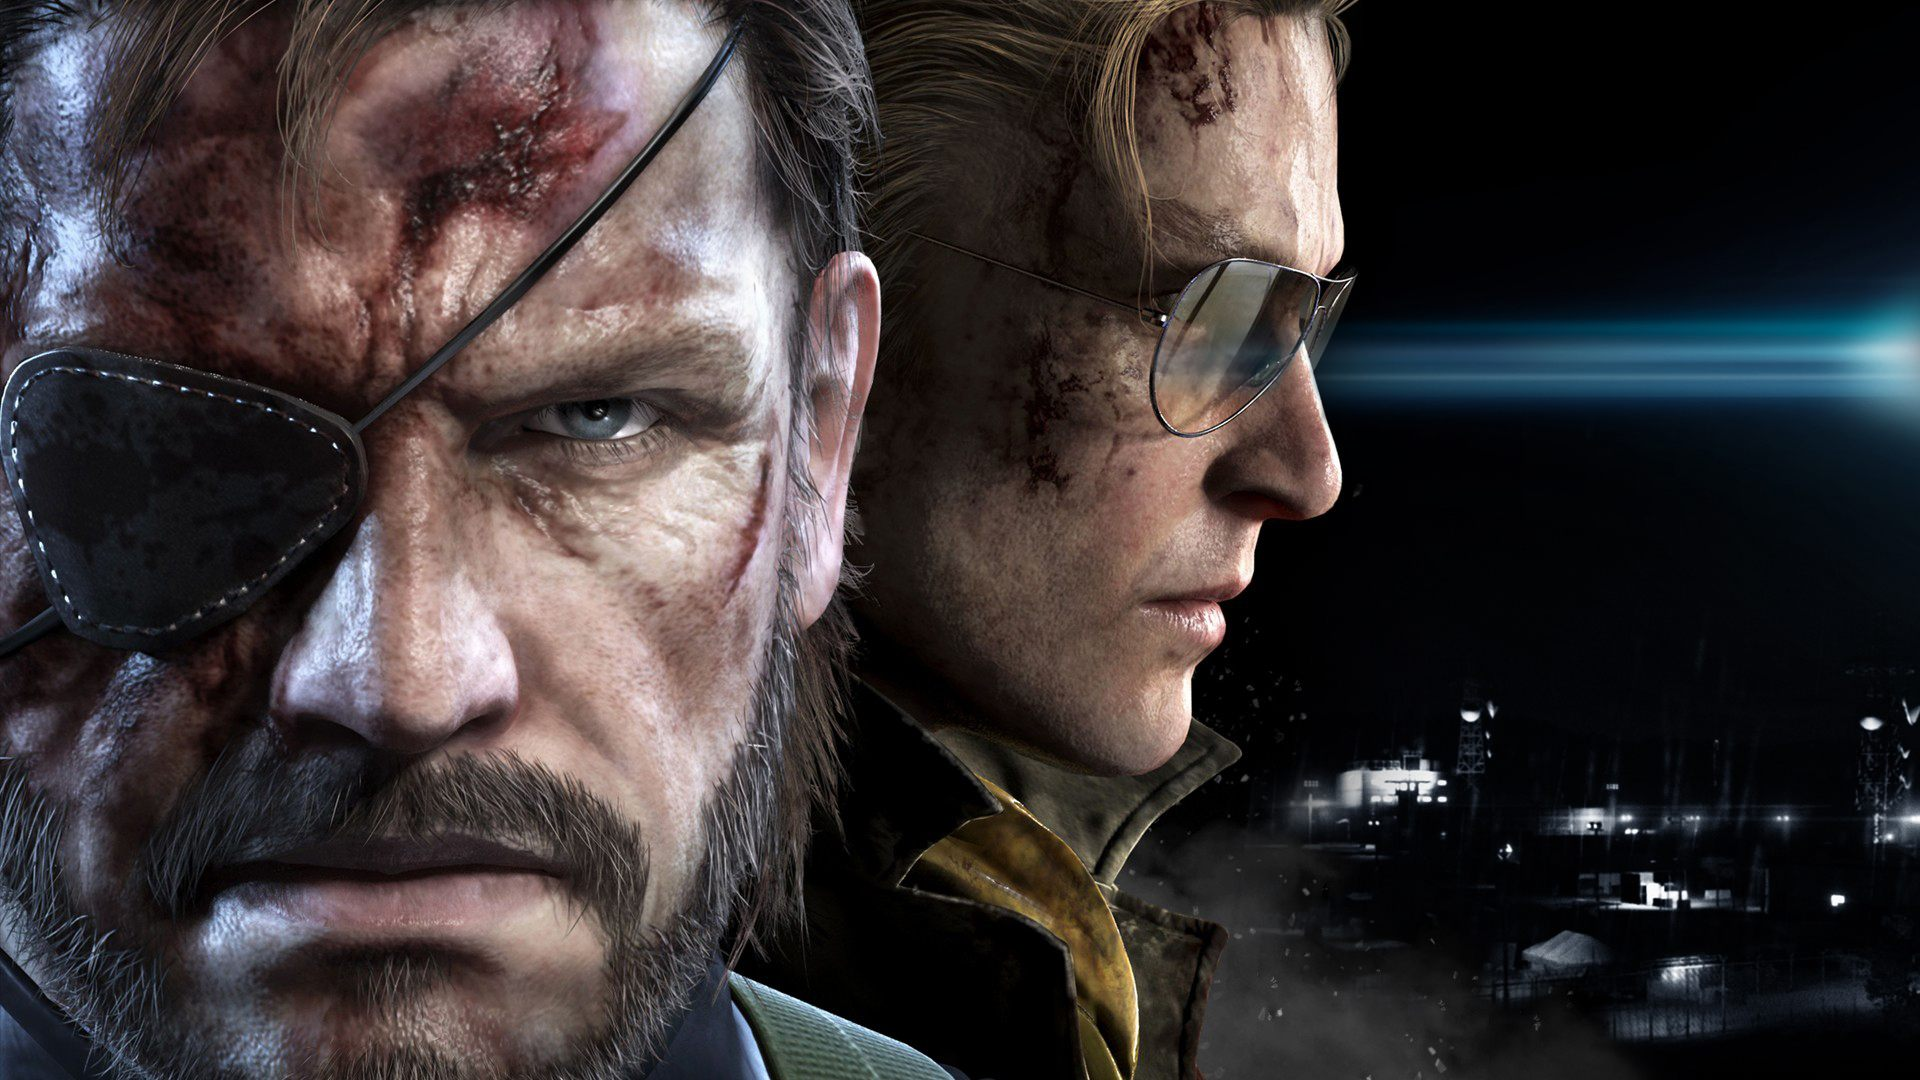 Metal Gear Solid V The Phantom Pain Hd Wallpapers 7wallpapers Net